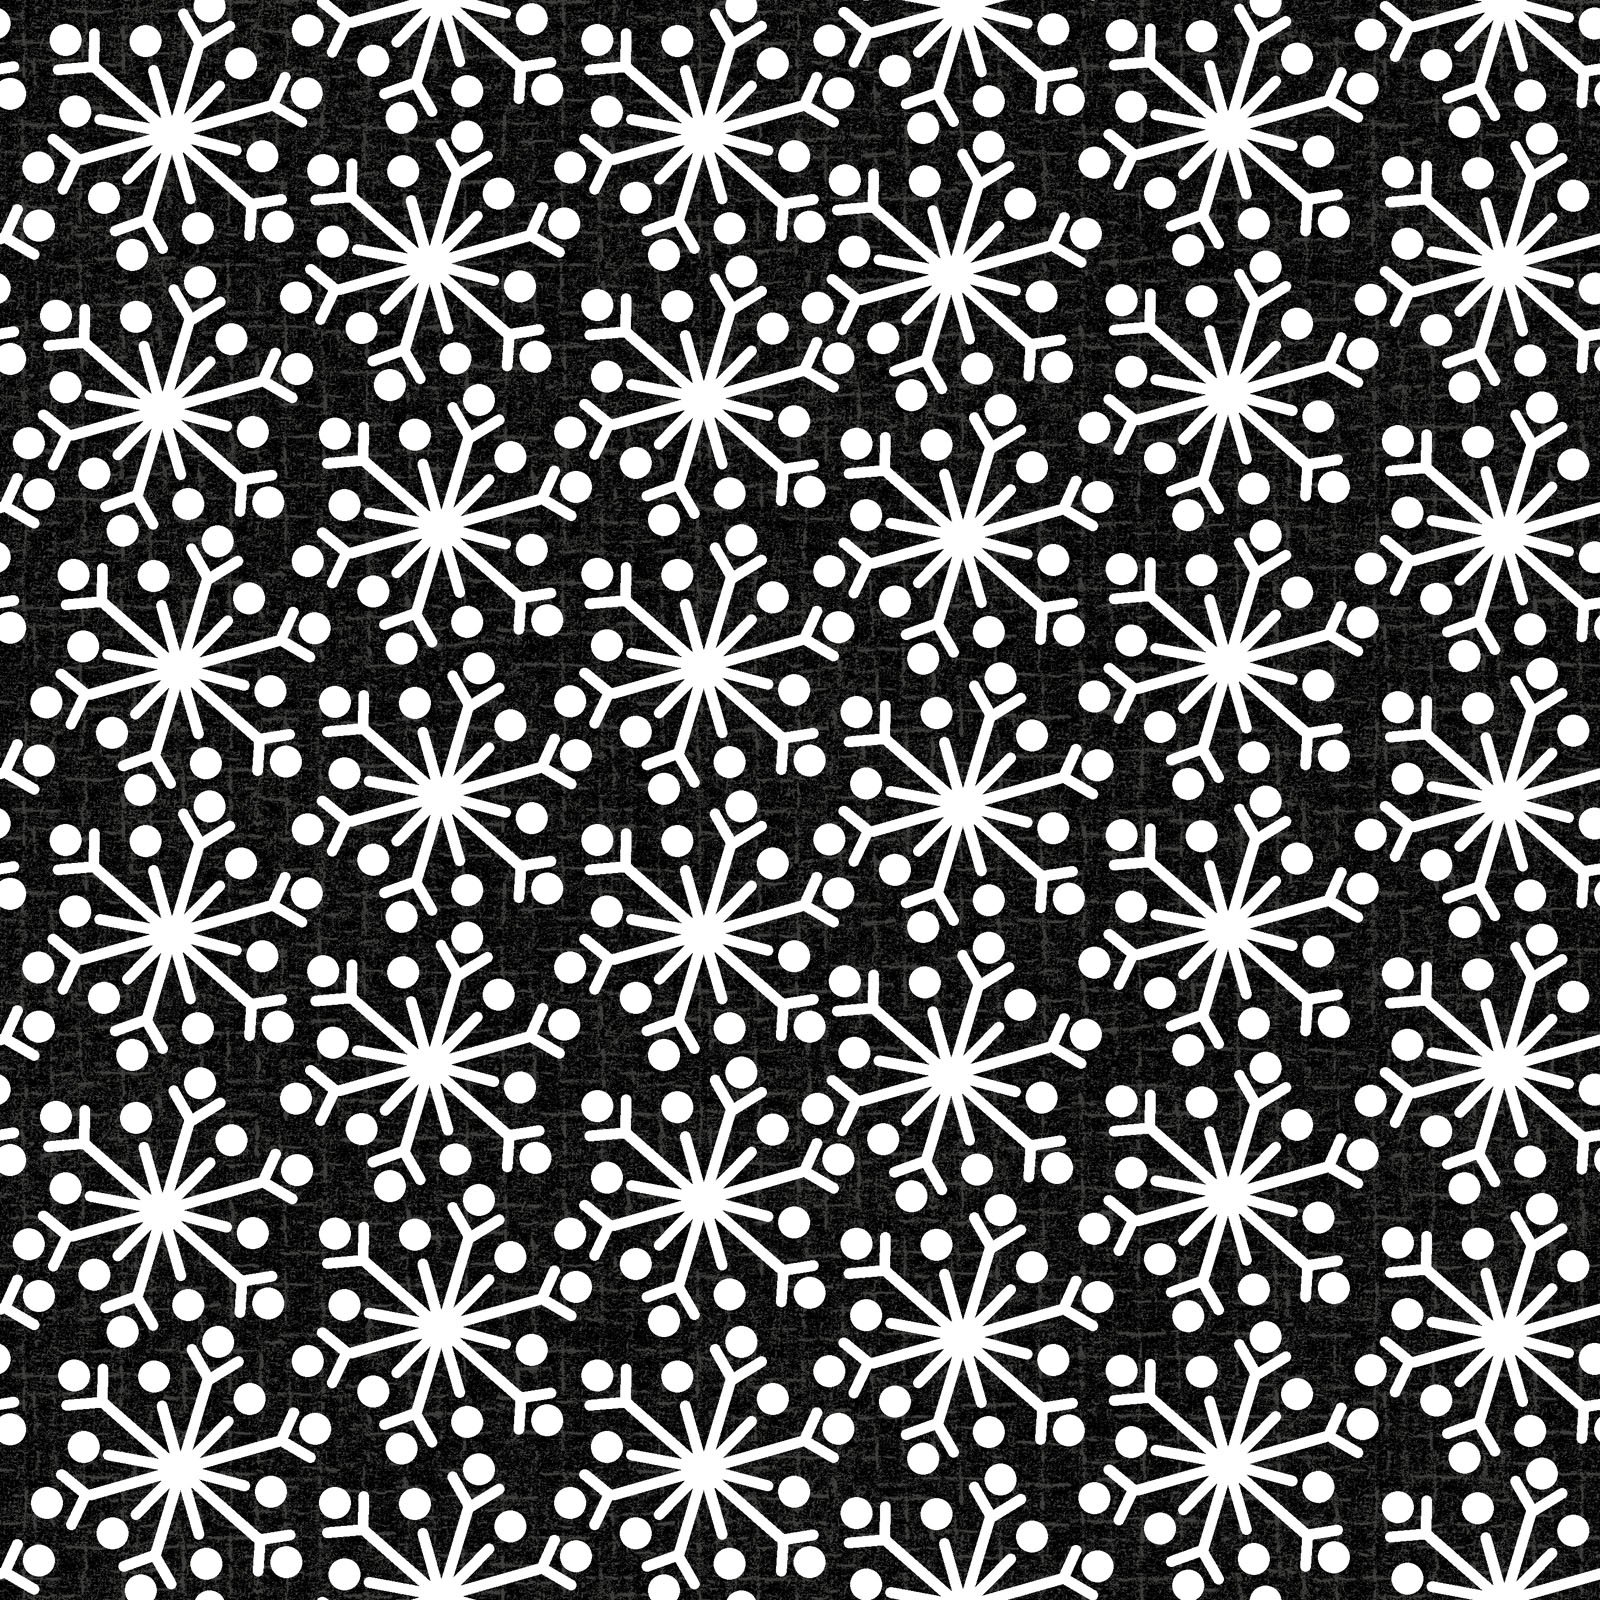 EESC-F9938 JK - SNOWDAYS FLANNEL BY BONNIE SULLIVAN SNOWFLAKE CHARCOAL - ARRIVING IN JULY 2021